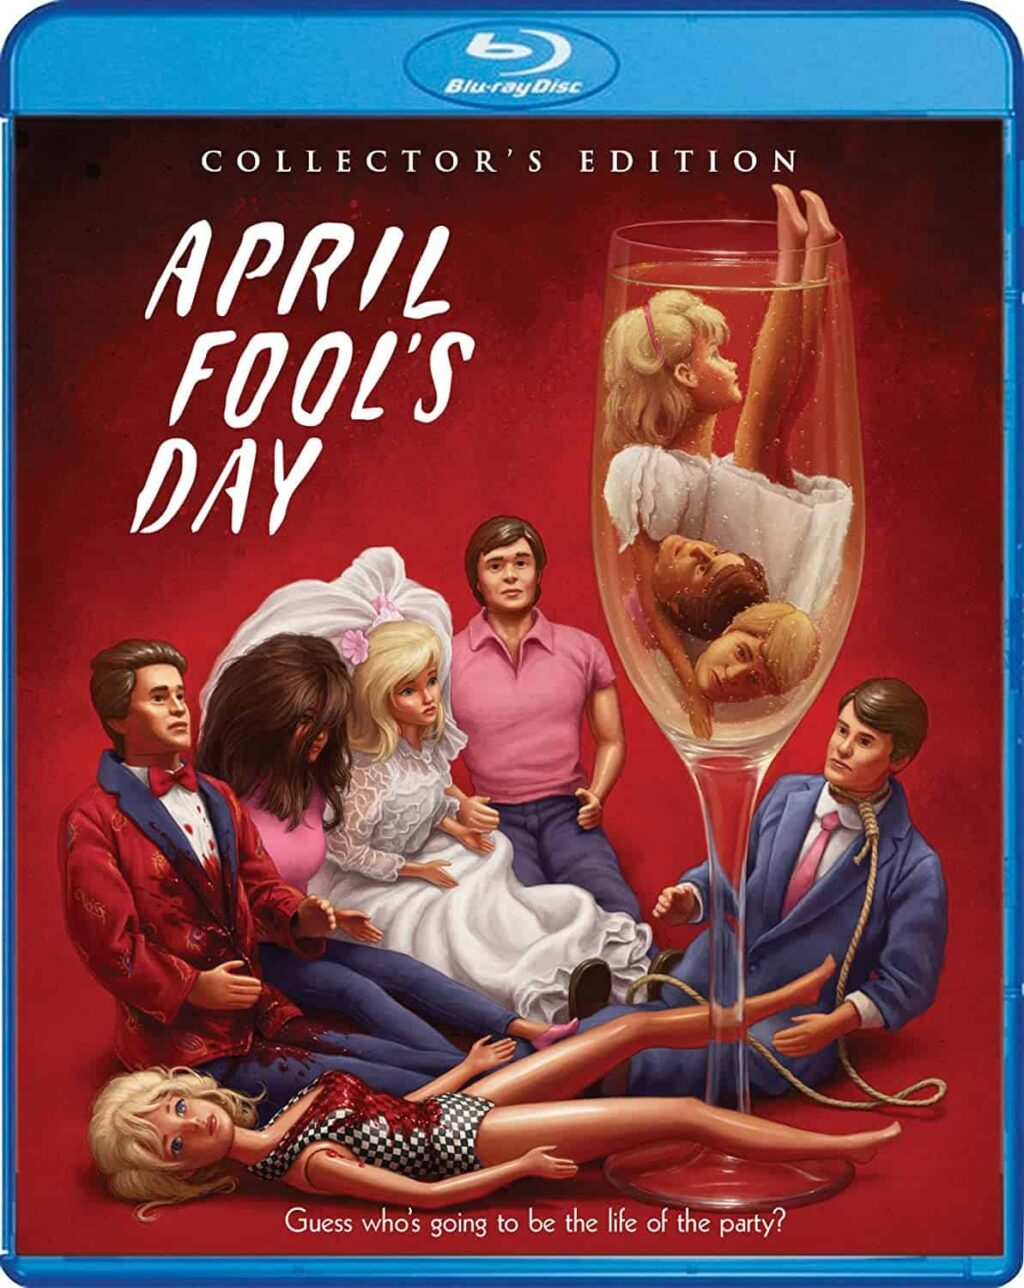 april fools day blu 1024x1288 - APRIL FOOL'S DAY Blu-ray Review - This Release Is No Joke